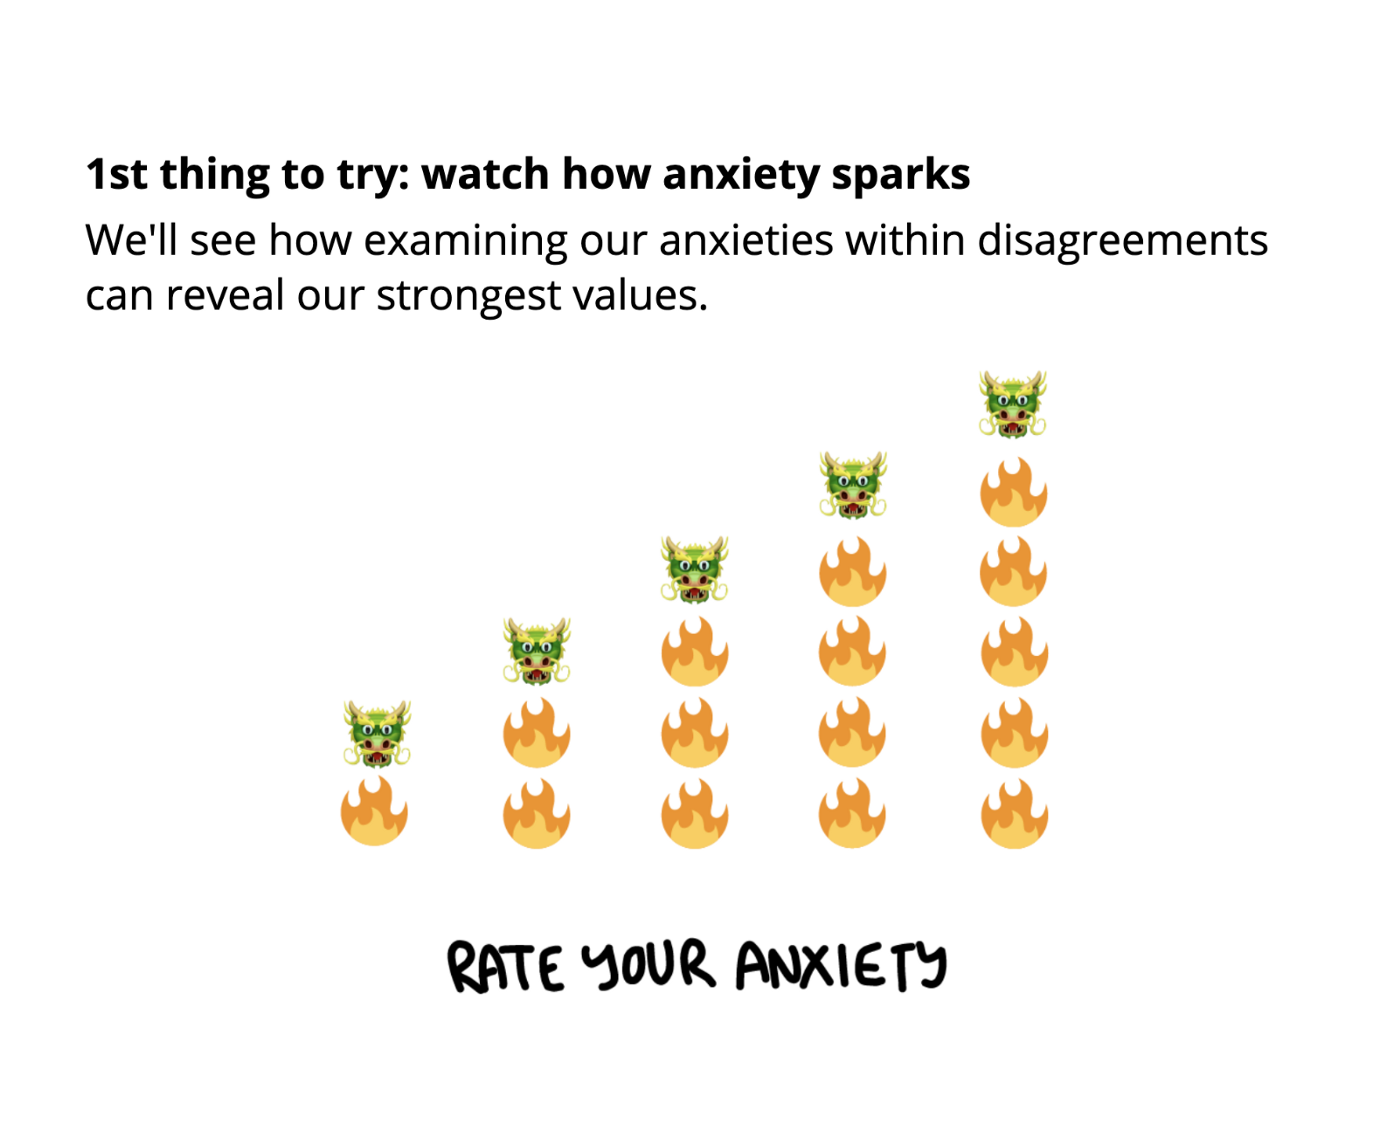 1st thing to try: watch how anxiety sparks